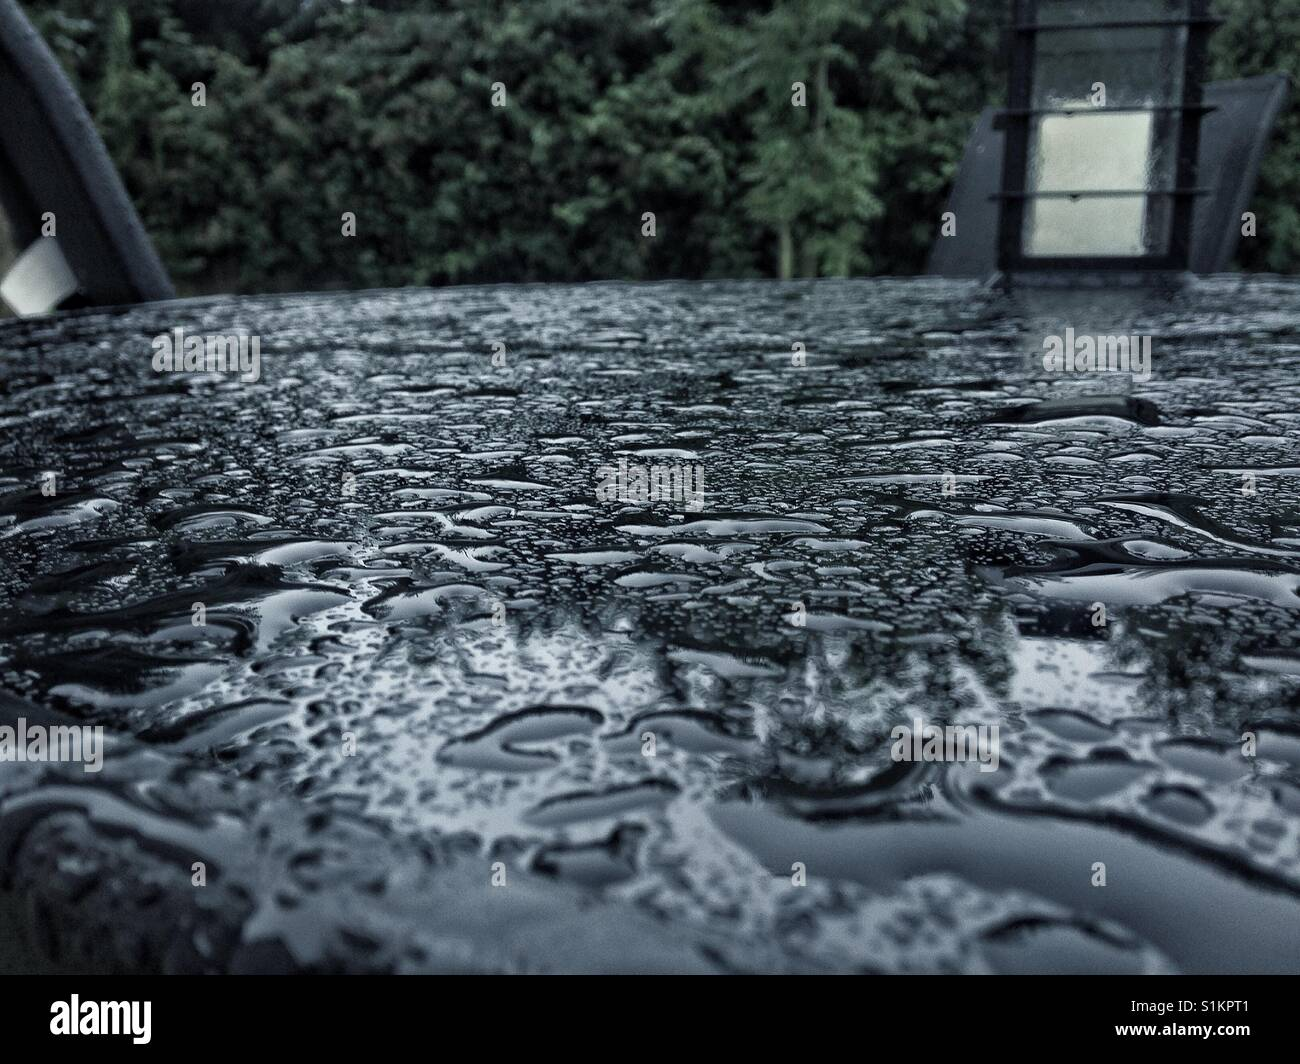 Dull rainy day - Stock Image